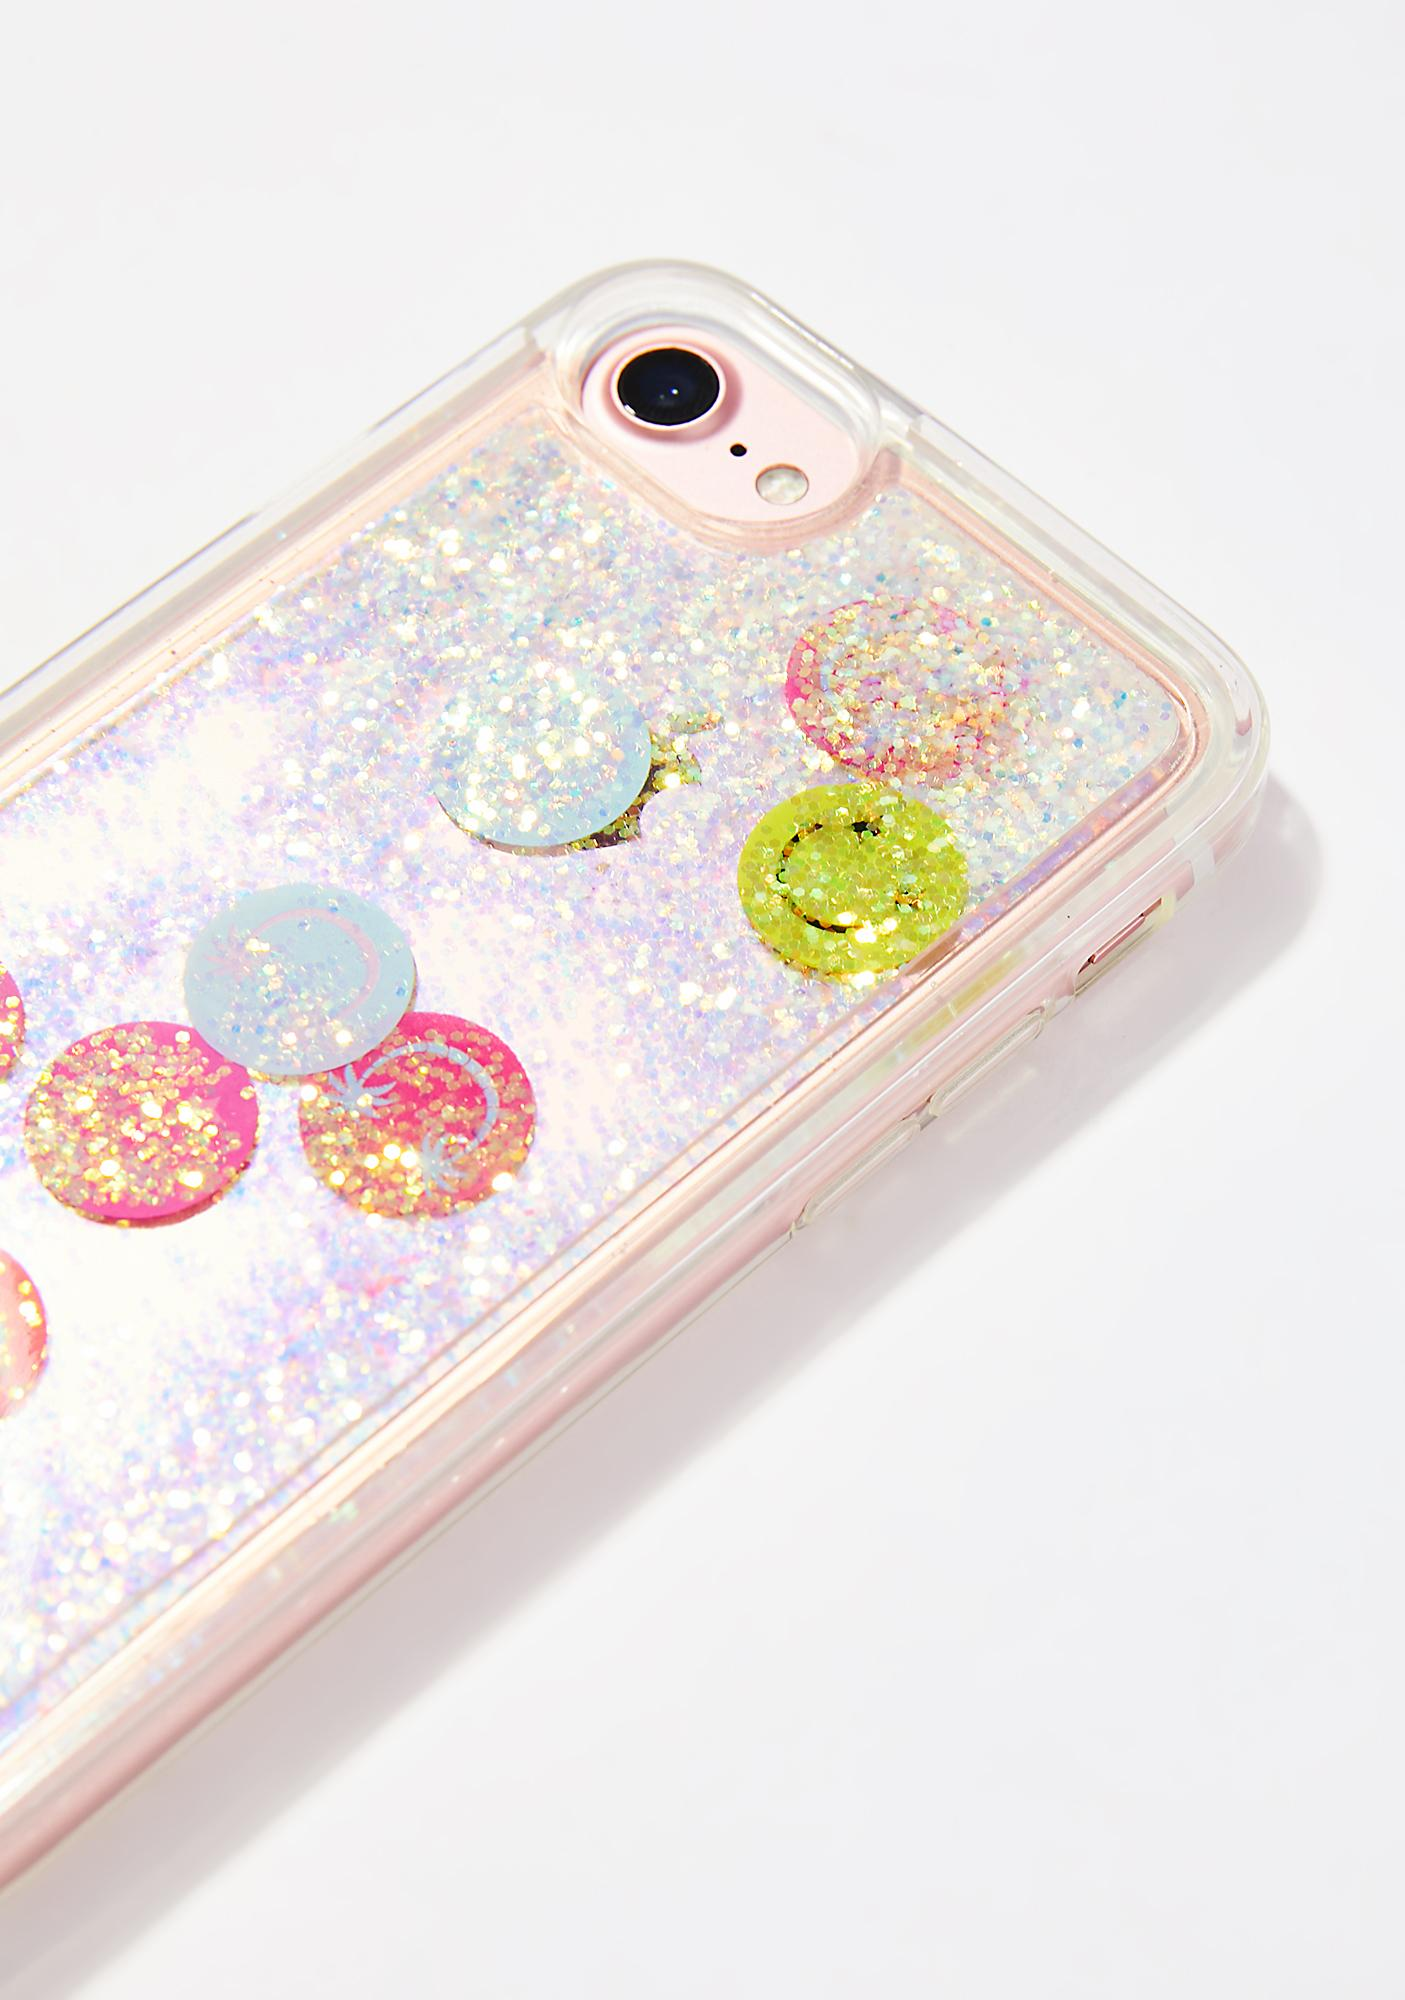 Skinnydip Smiley Glitter iPhone Case